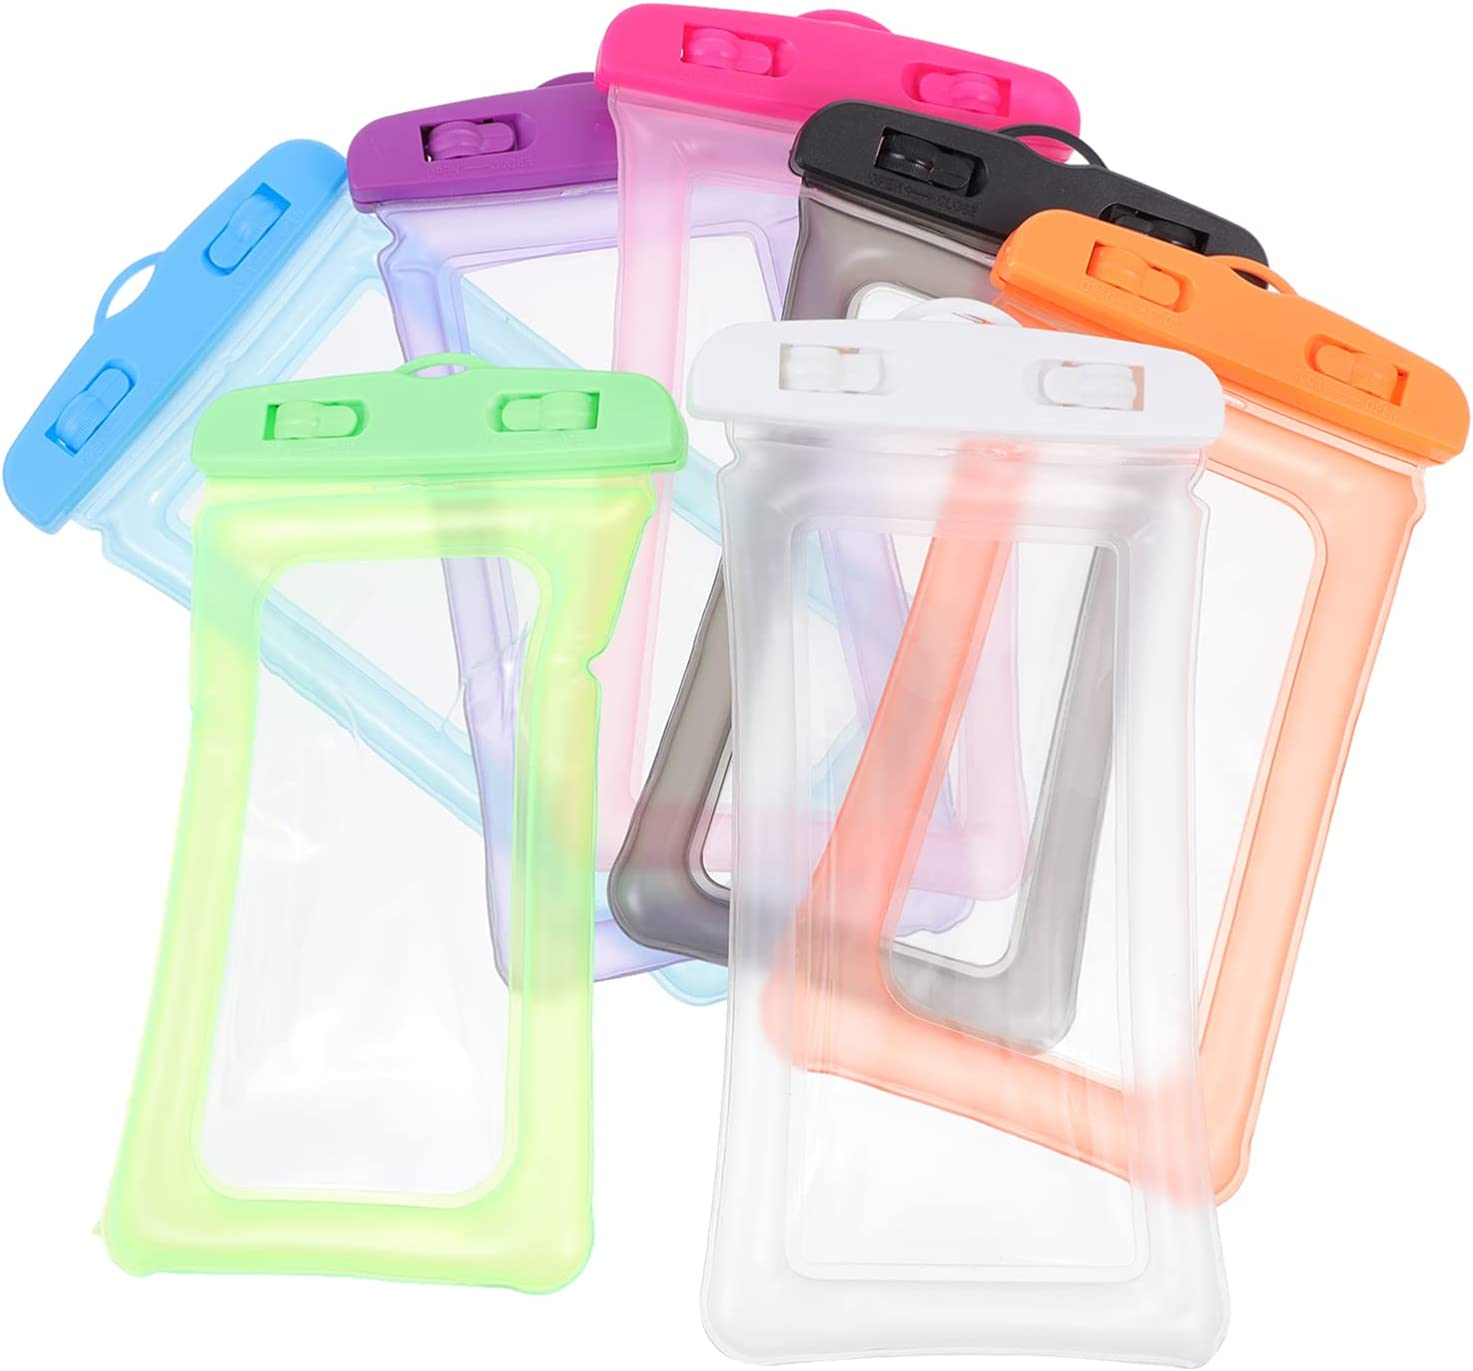 Hemobllo 7pcs Phone Waterproof Bag Simple and Durable Touch Screen Cellphone Dry Bags